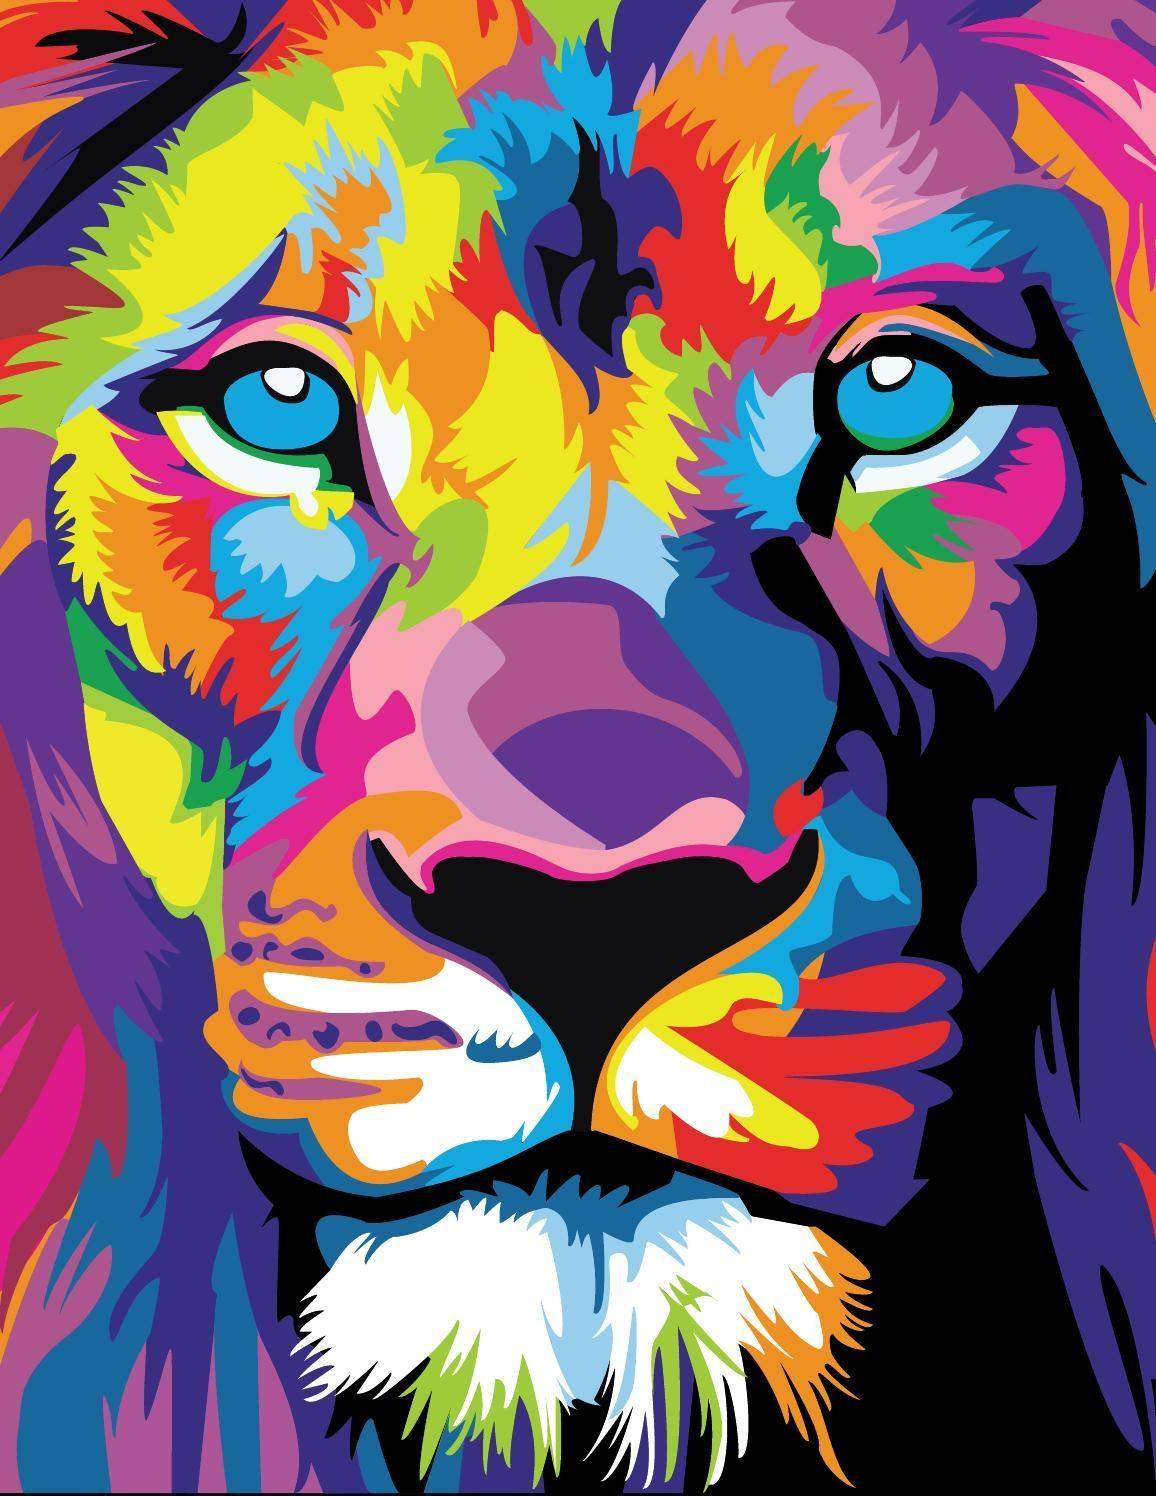 Rasta Lion Wallpaper Iphone Parts In The Sum Of The Whole Pretty Things Art